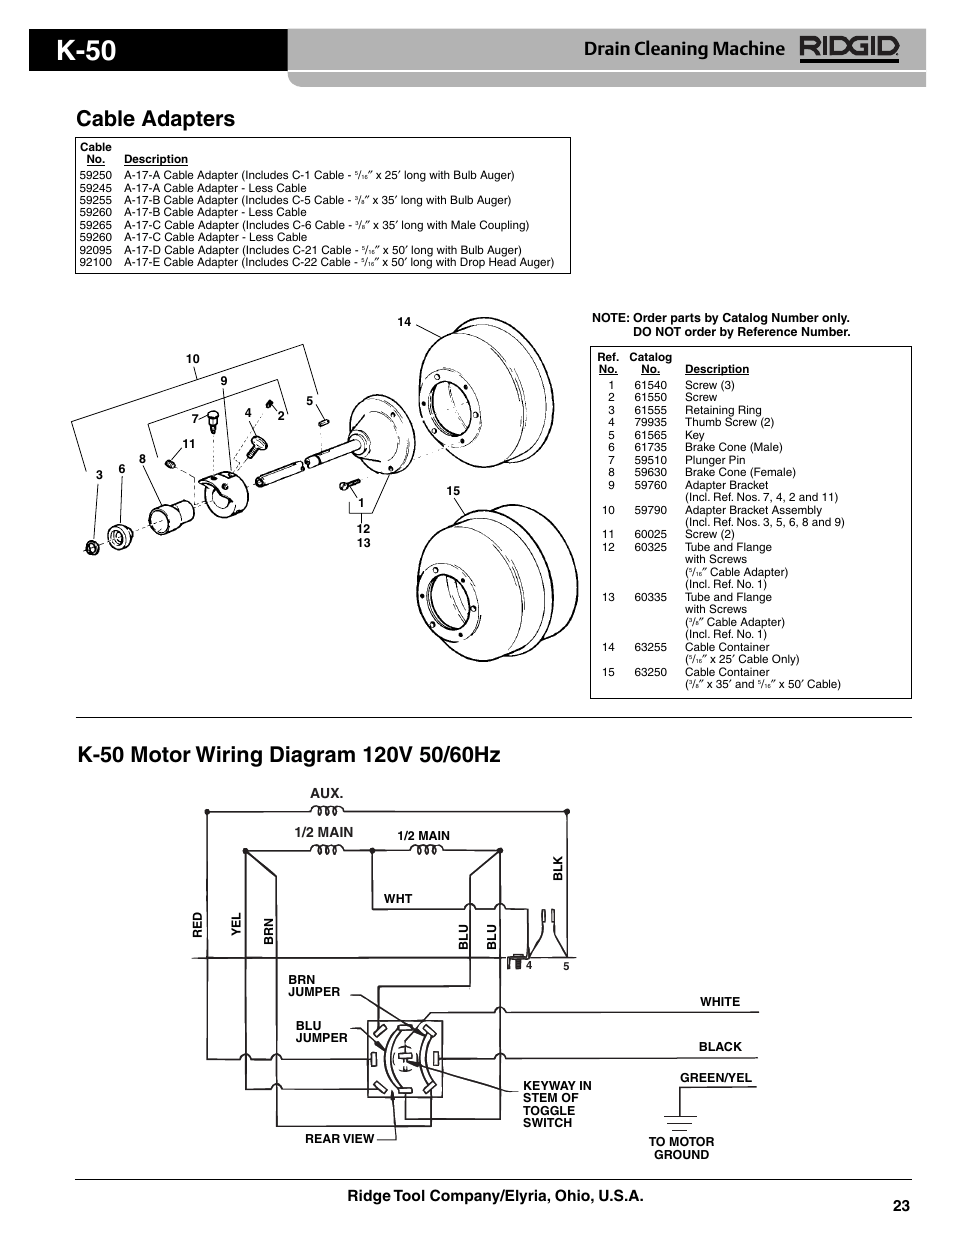 medium resolution of k 50 cable adapters drain cleaning machine ridgid k 50 sectional cable machine user manual page 2 2